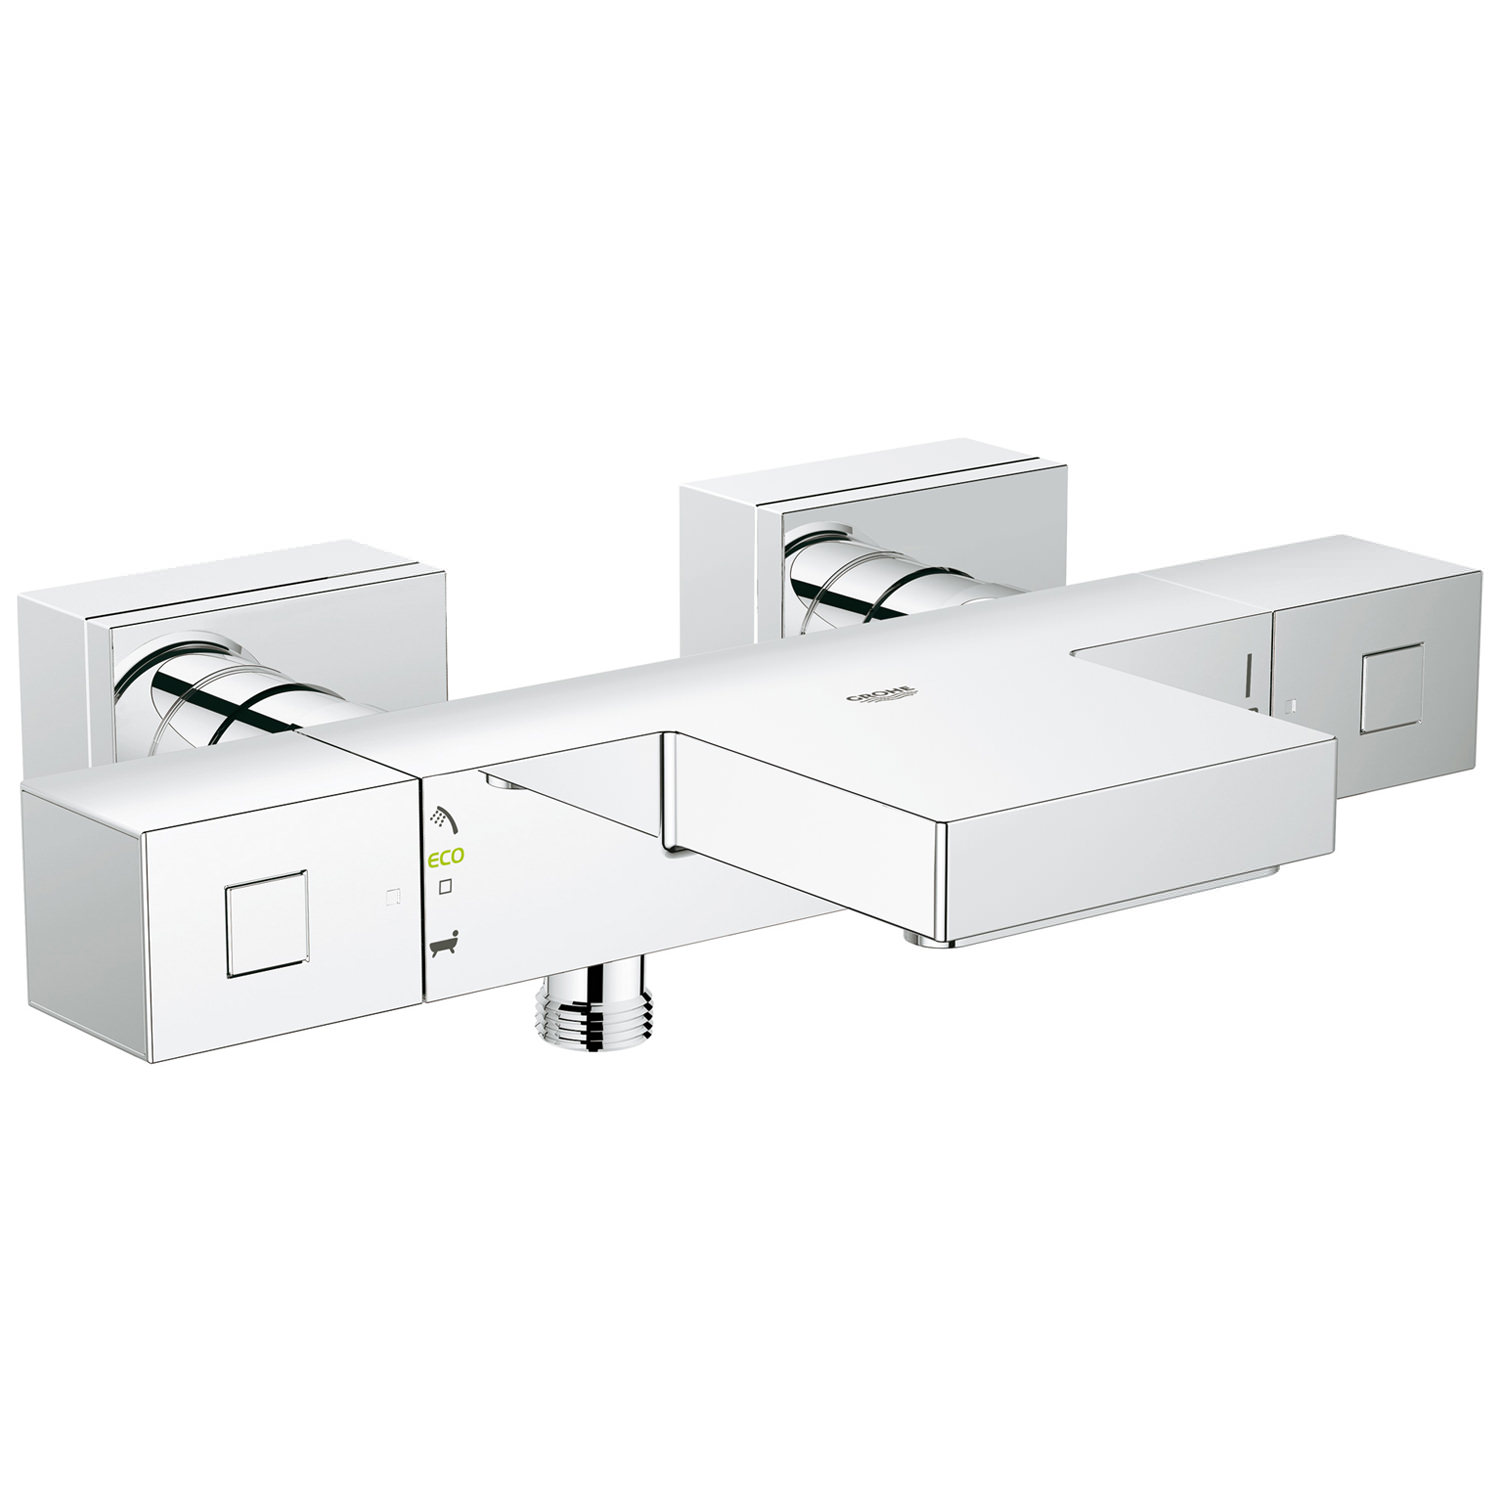 grohe grohtherm cube thermostatic wall mount bath shower mixer tap. Black Bedroom Furniture Sets. Home Design Ideas